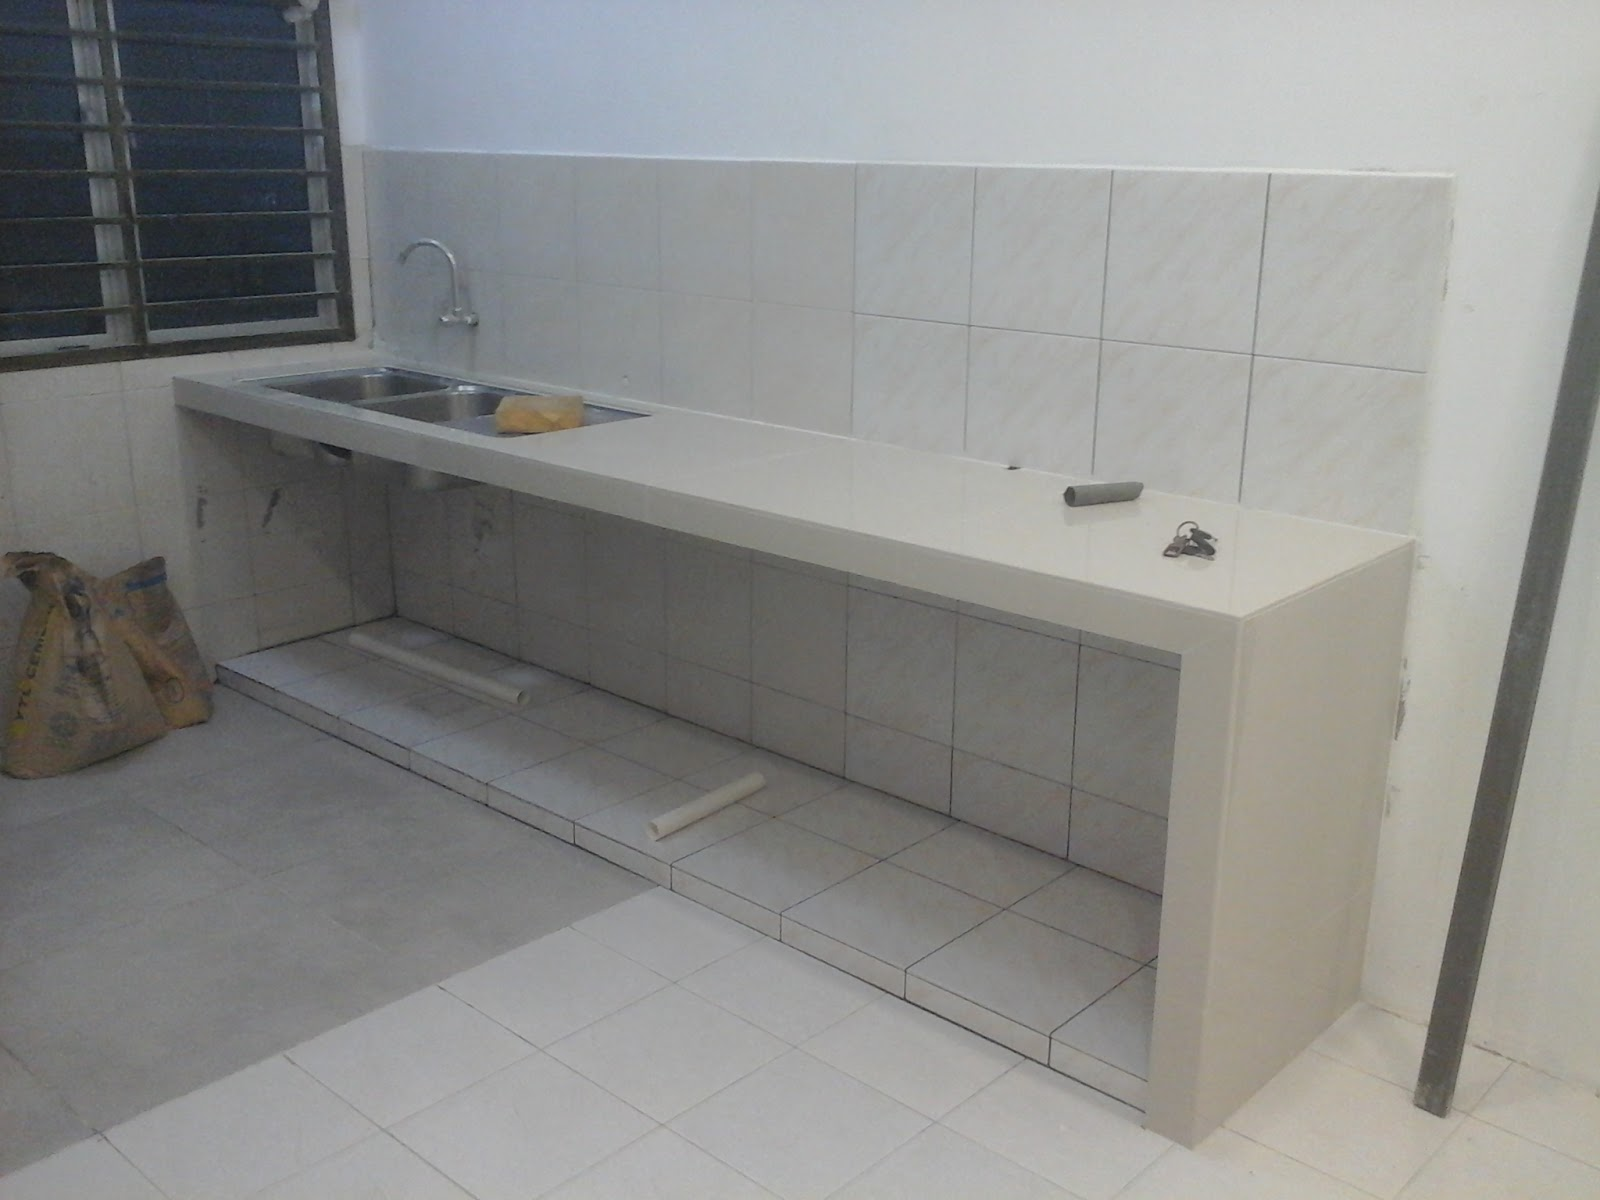 Meja dapur konkrit table top concrete di sepang for Pemasangan kitchen set